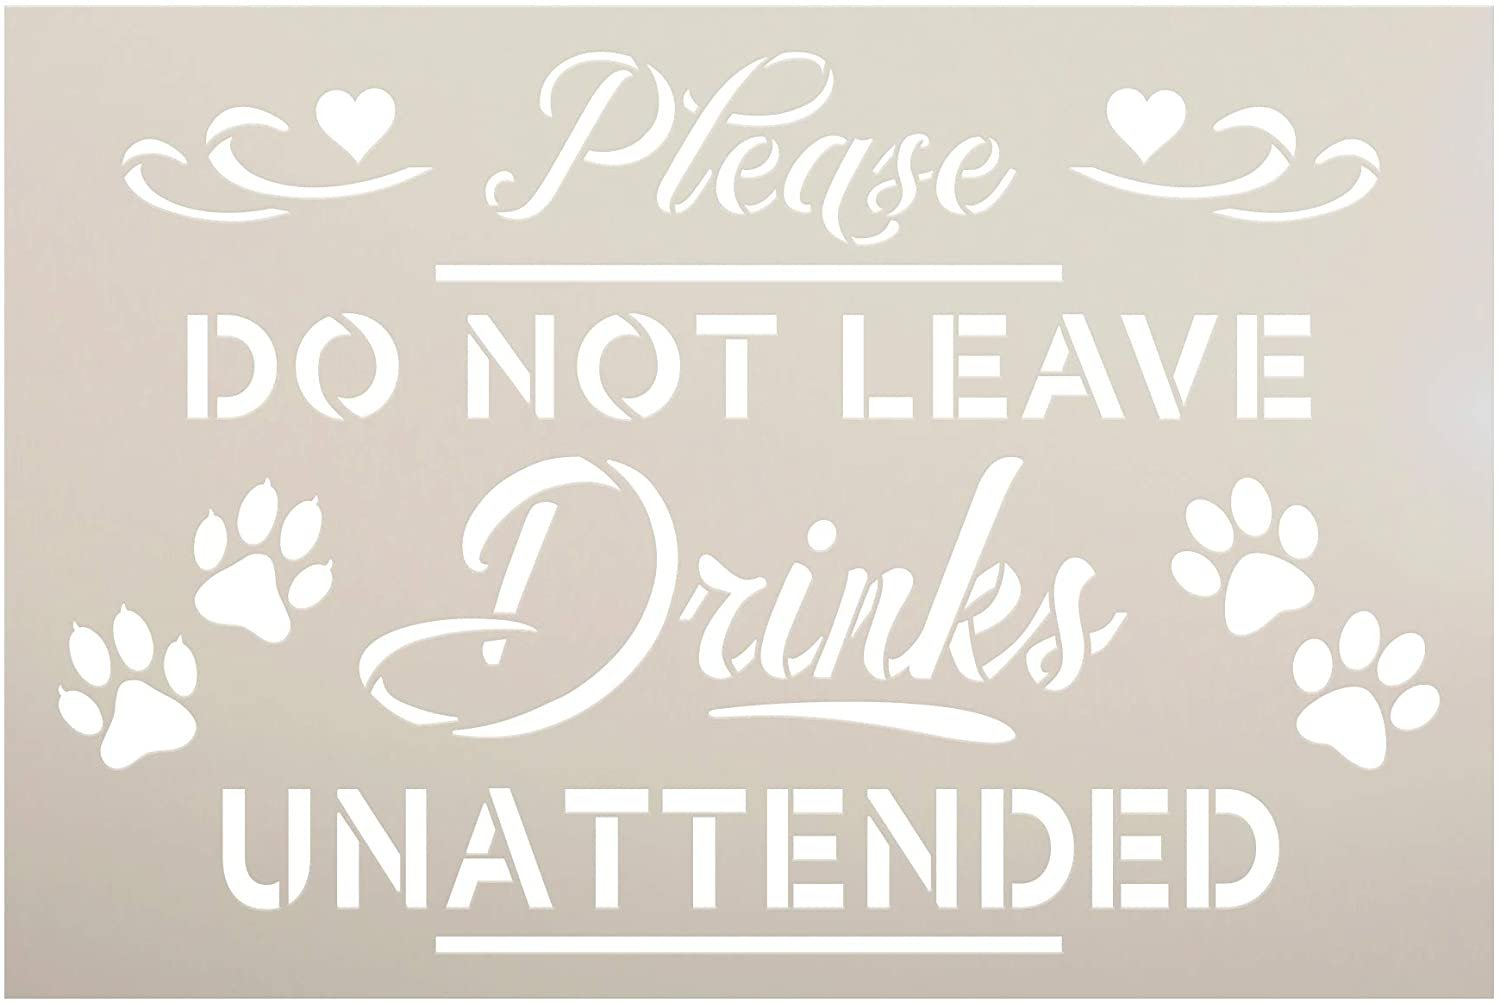 Do Not Leave Drinks Unattended Stencil by StudioR12 | DIY Dog Cat Paw Home Decor Gift | Craft & Paint Wood Sign Reusable Mylar Template | Select Size